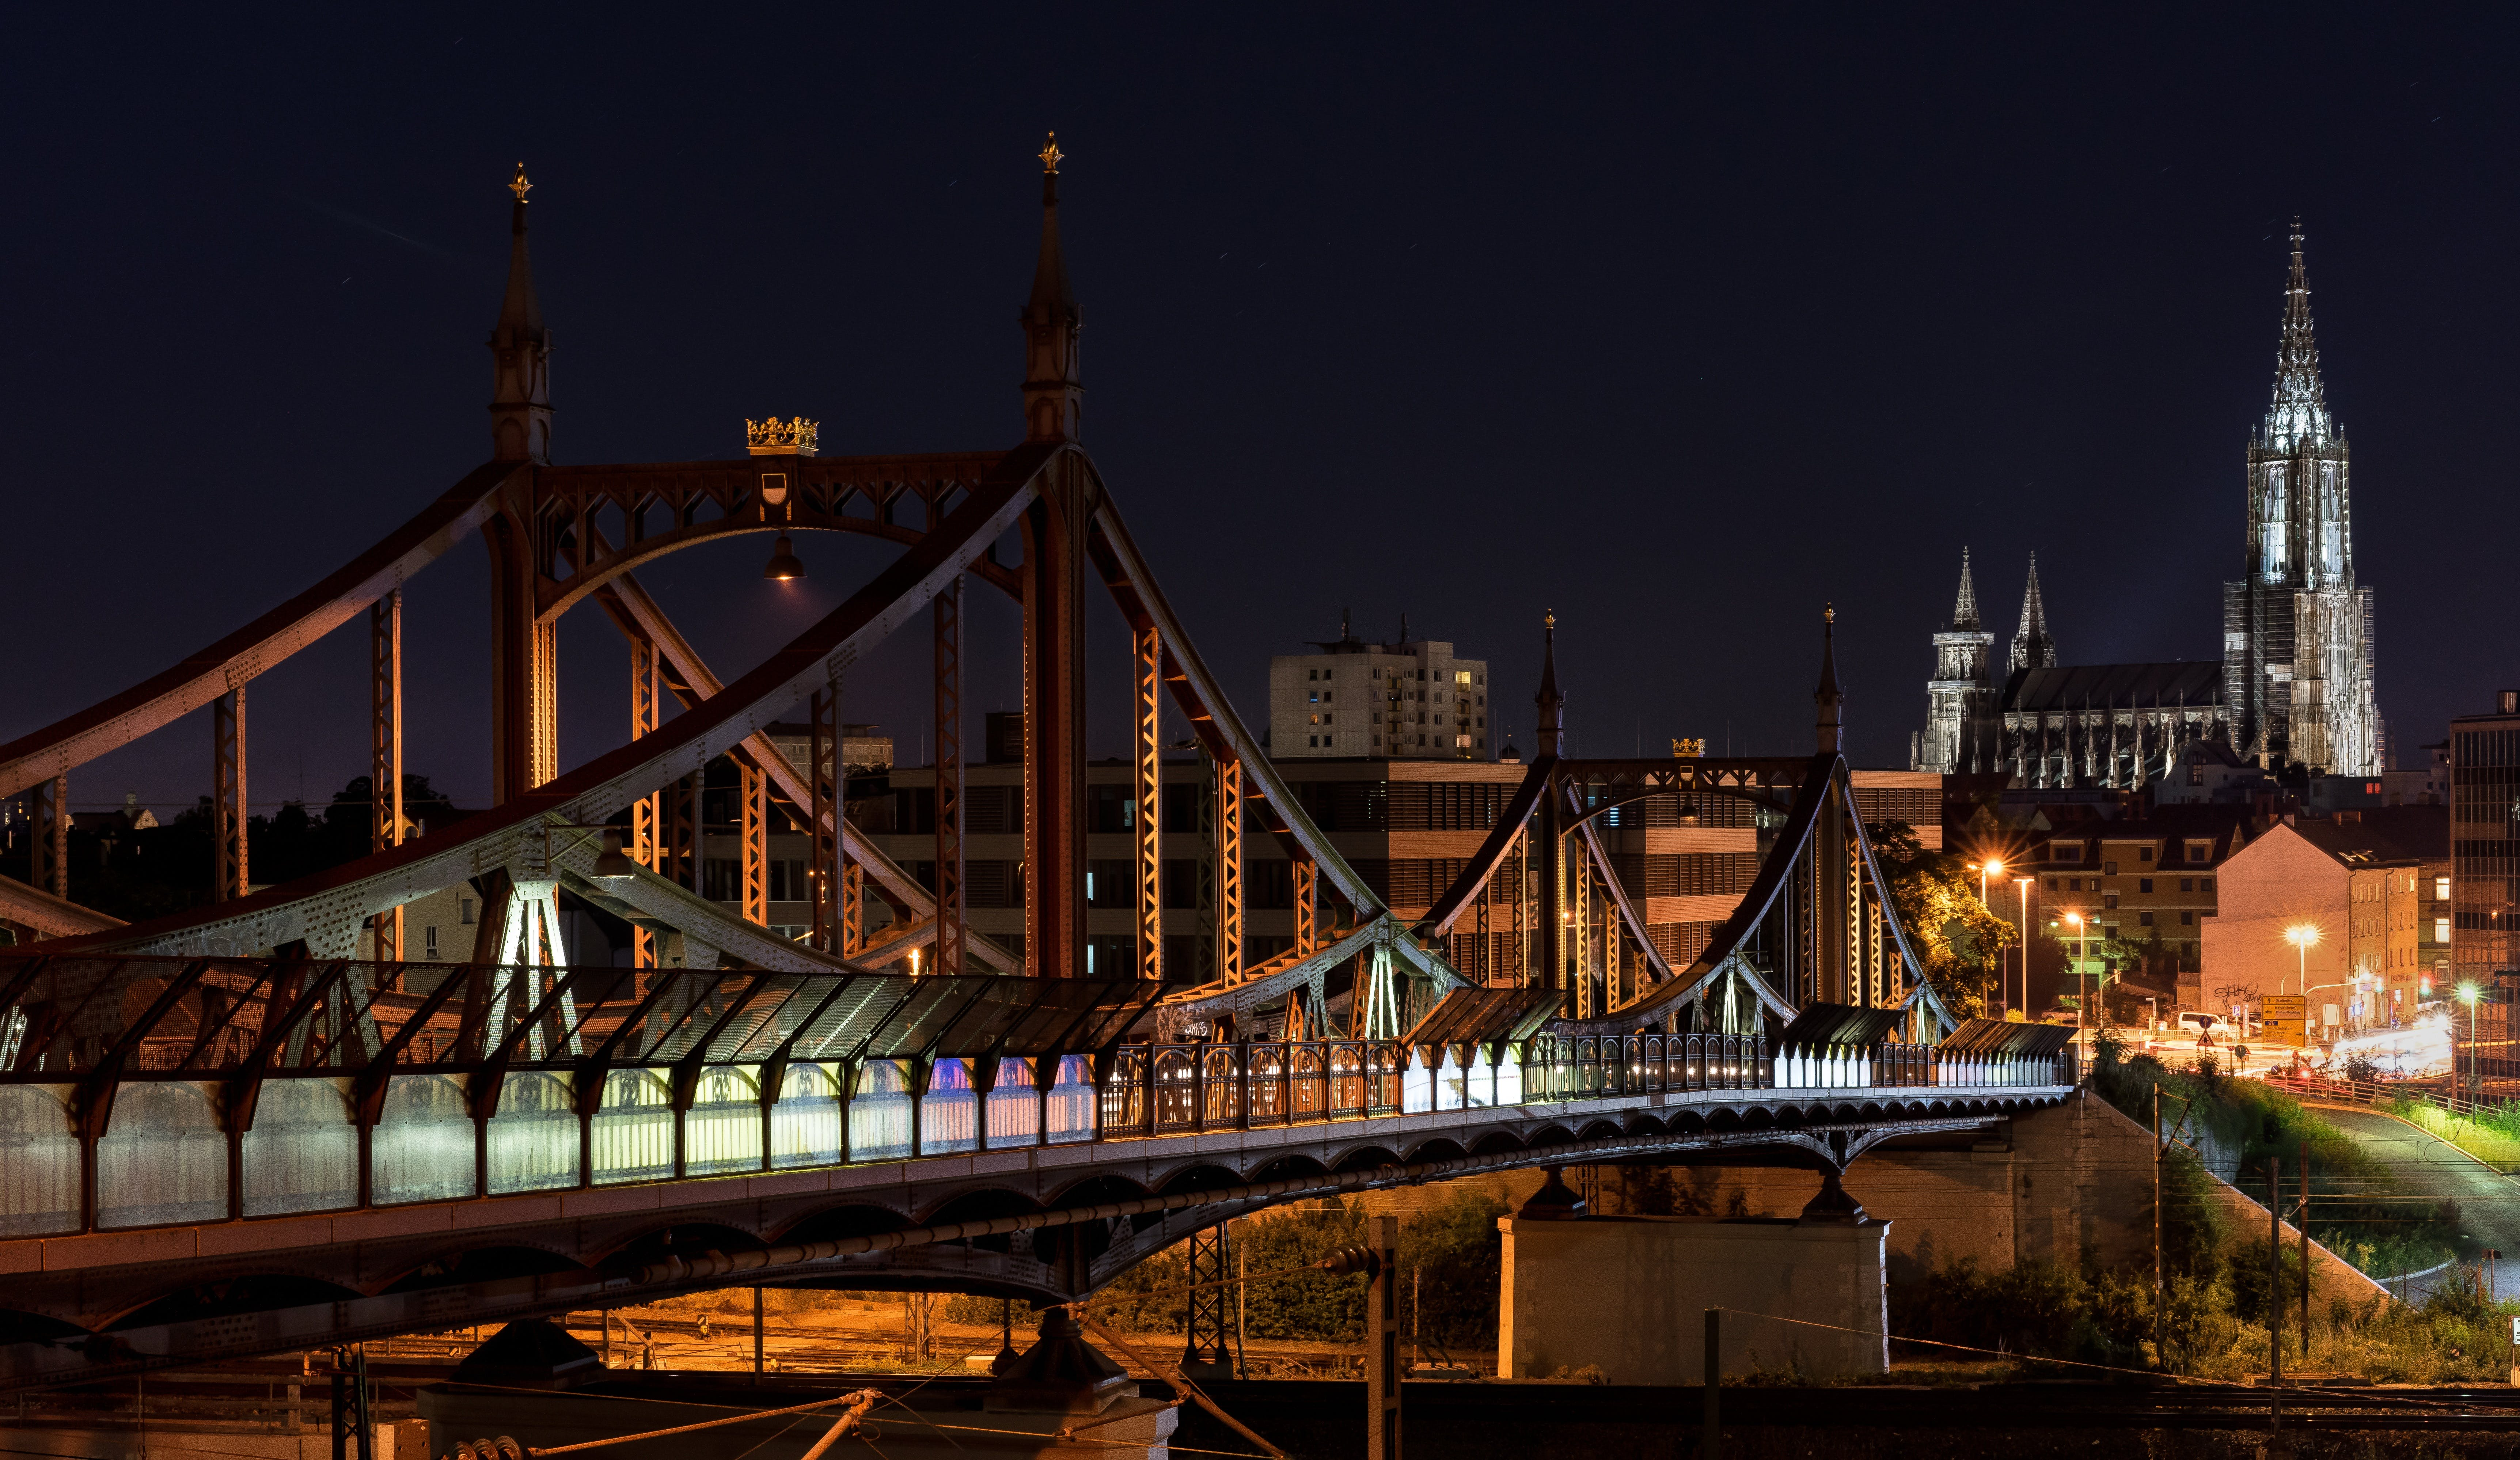 City Bridge Representation during Nigh Time